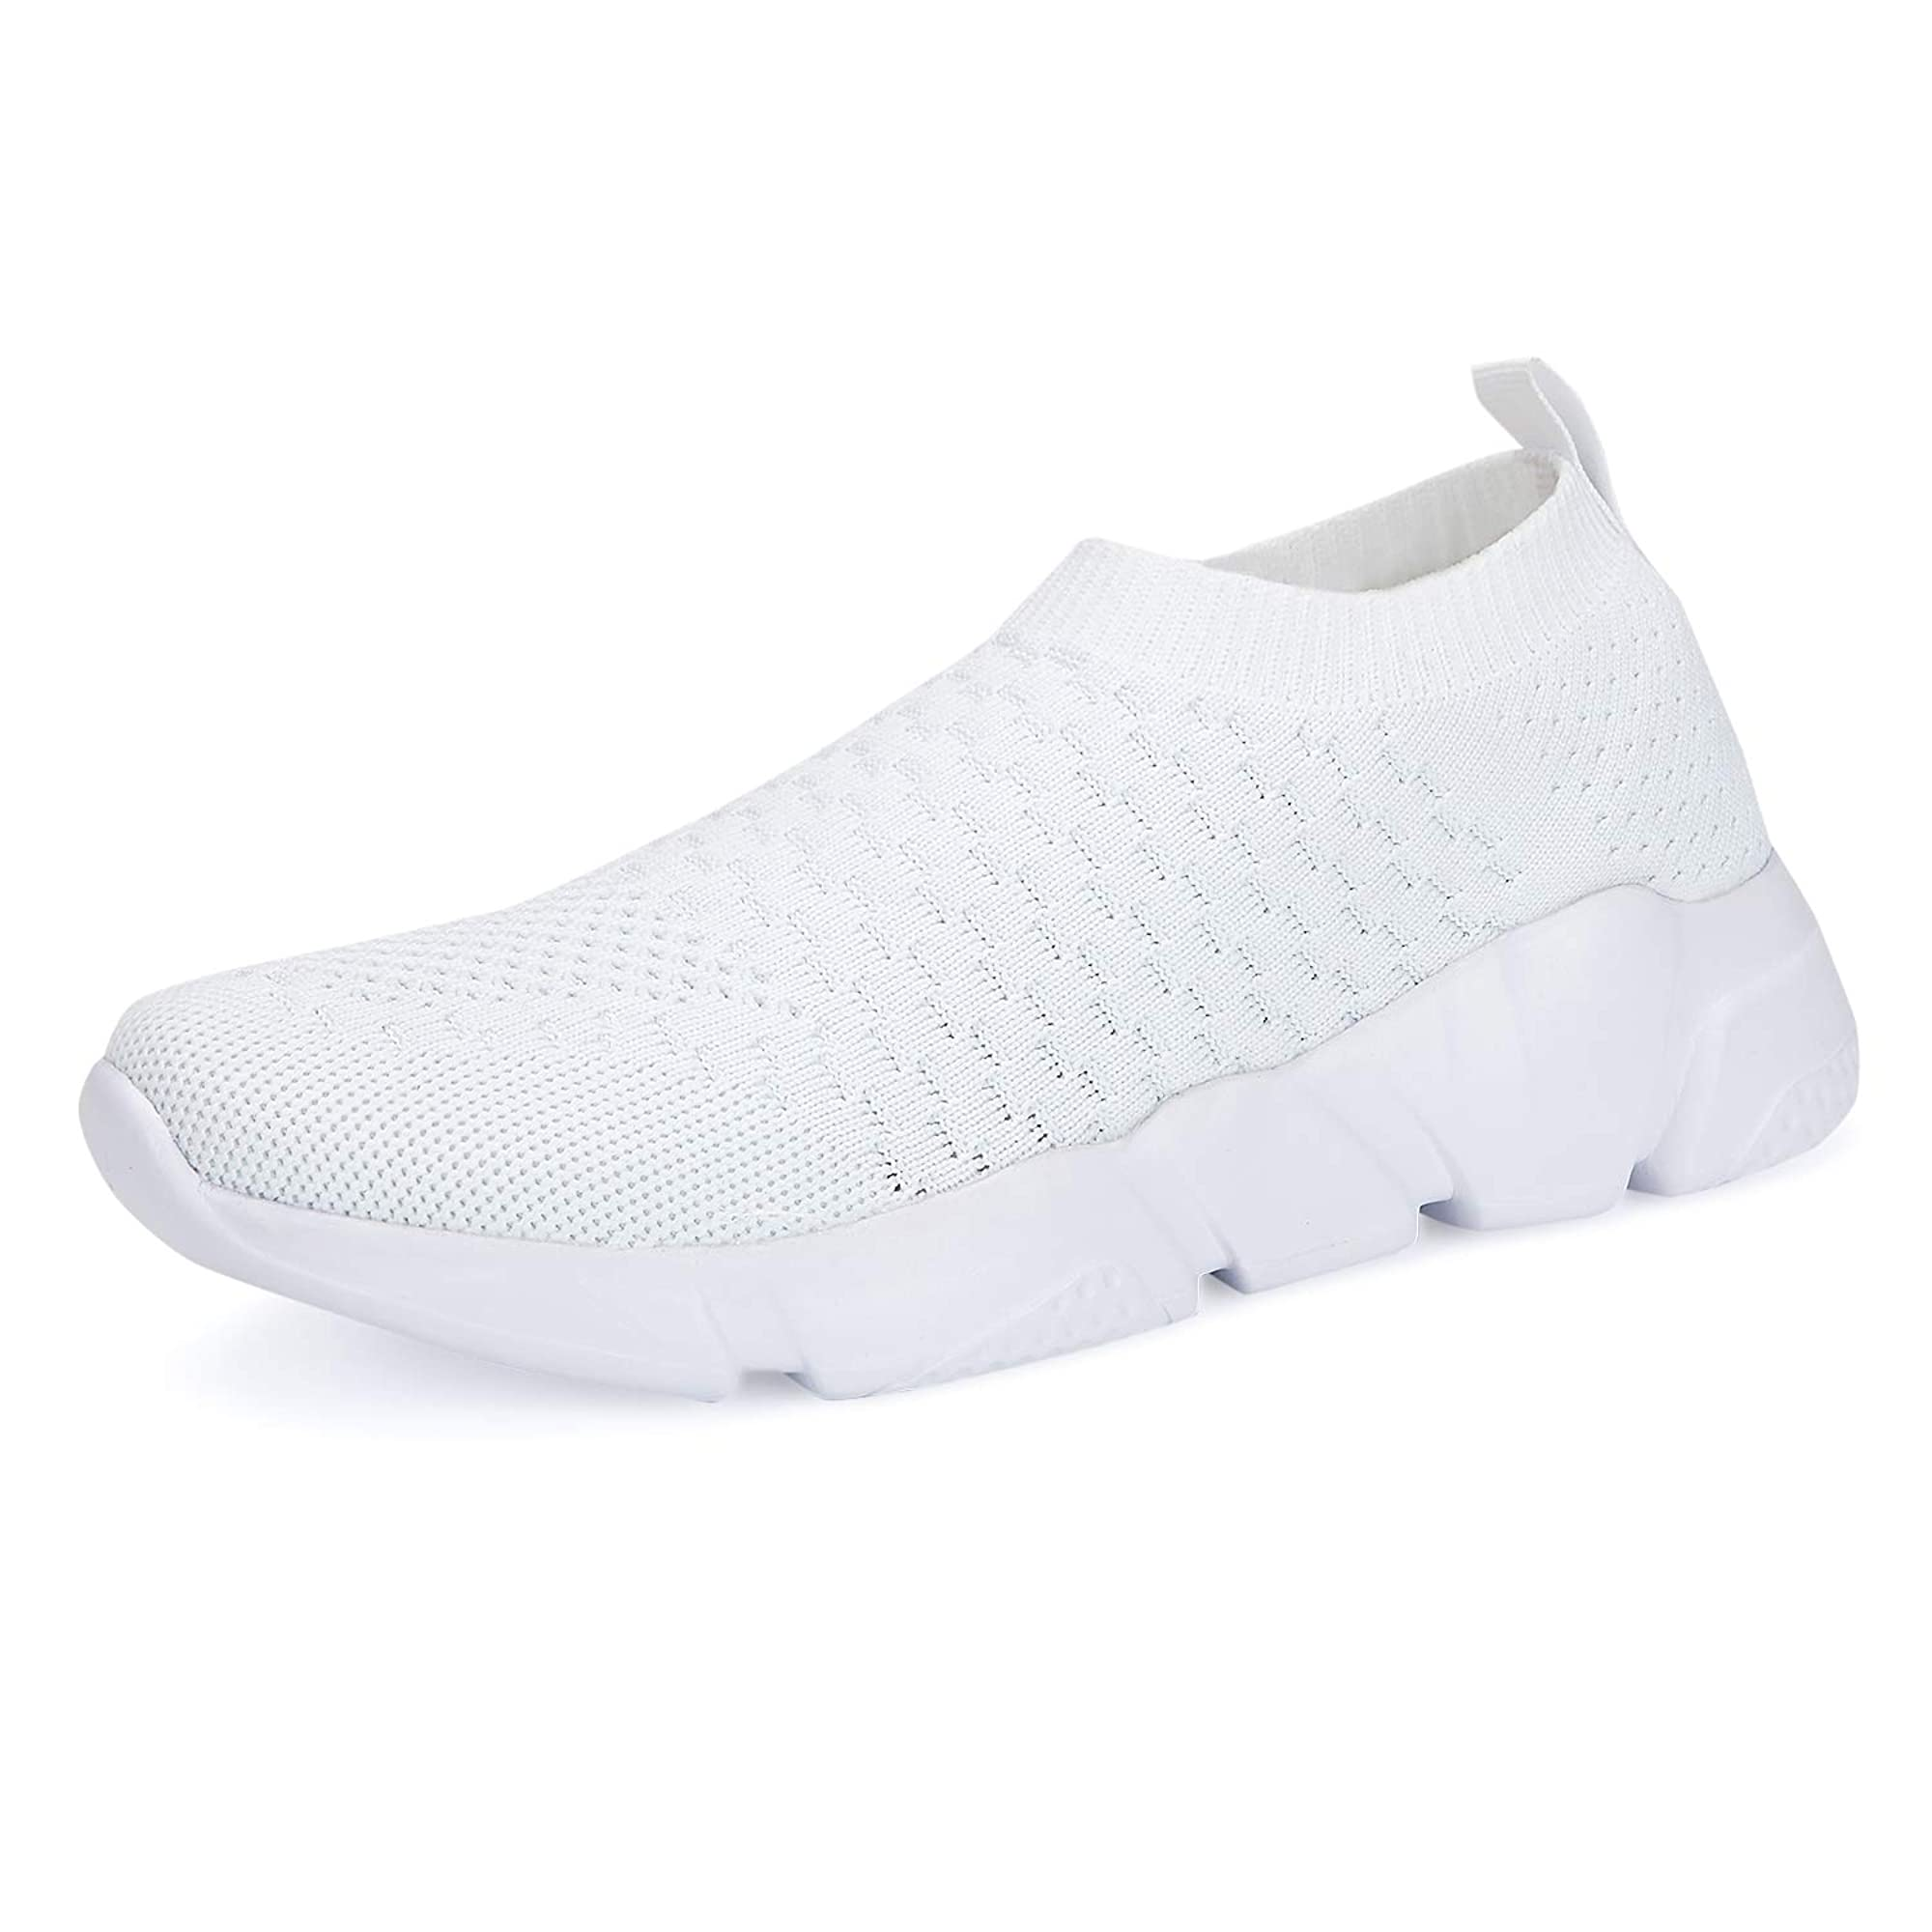 Breathable Running/Walking Shoes